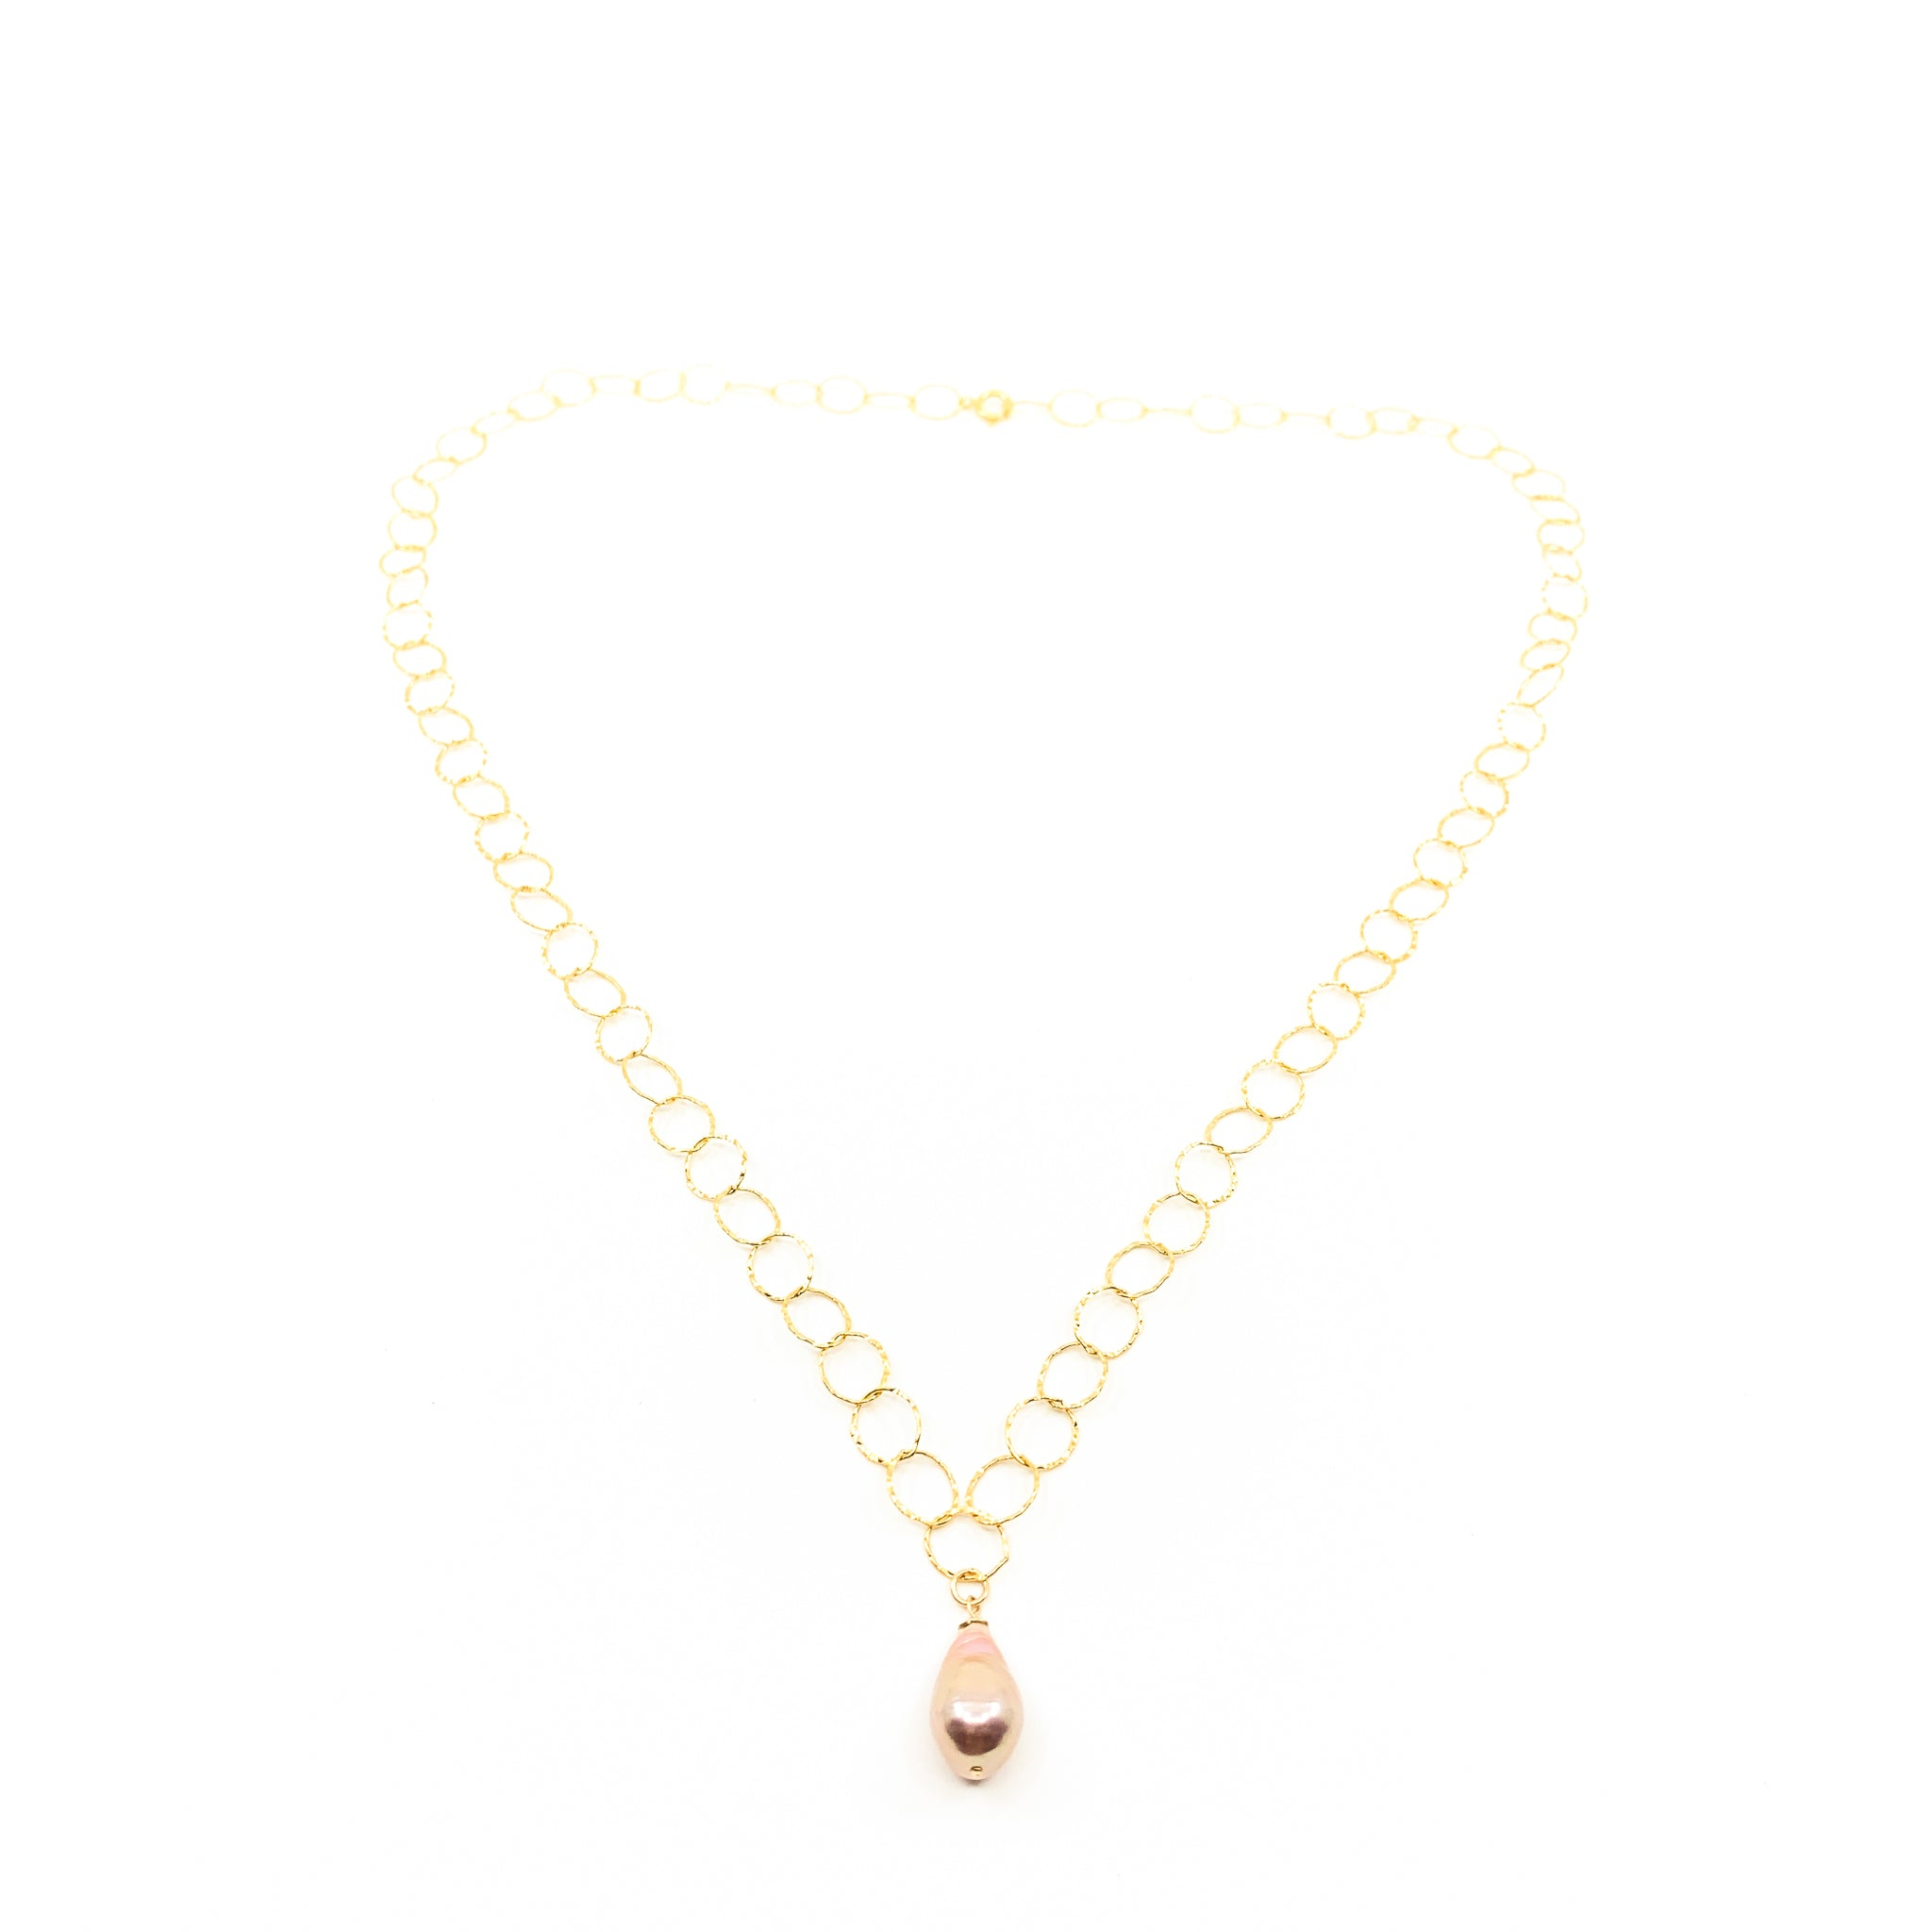 natural pink pearl gold round chain necklace by eve black jewelry made in Hawaii